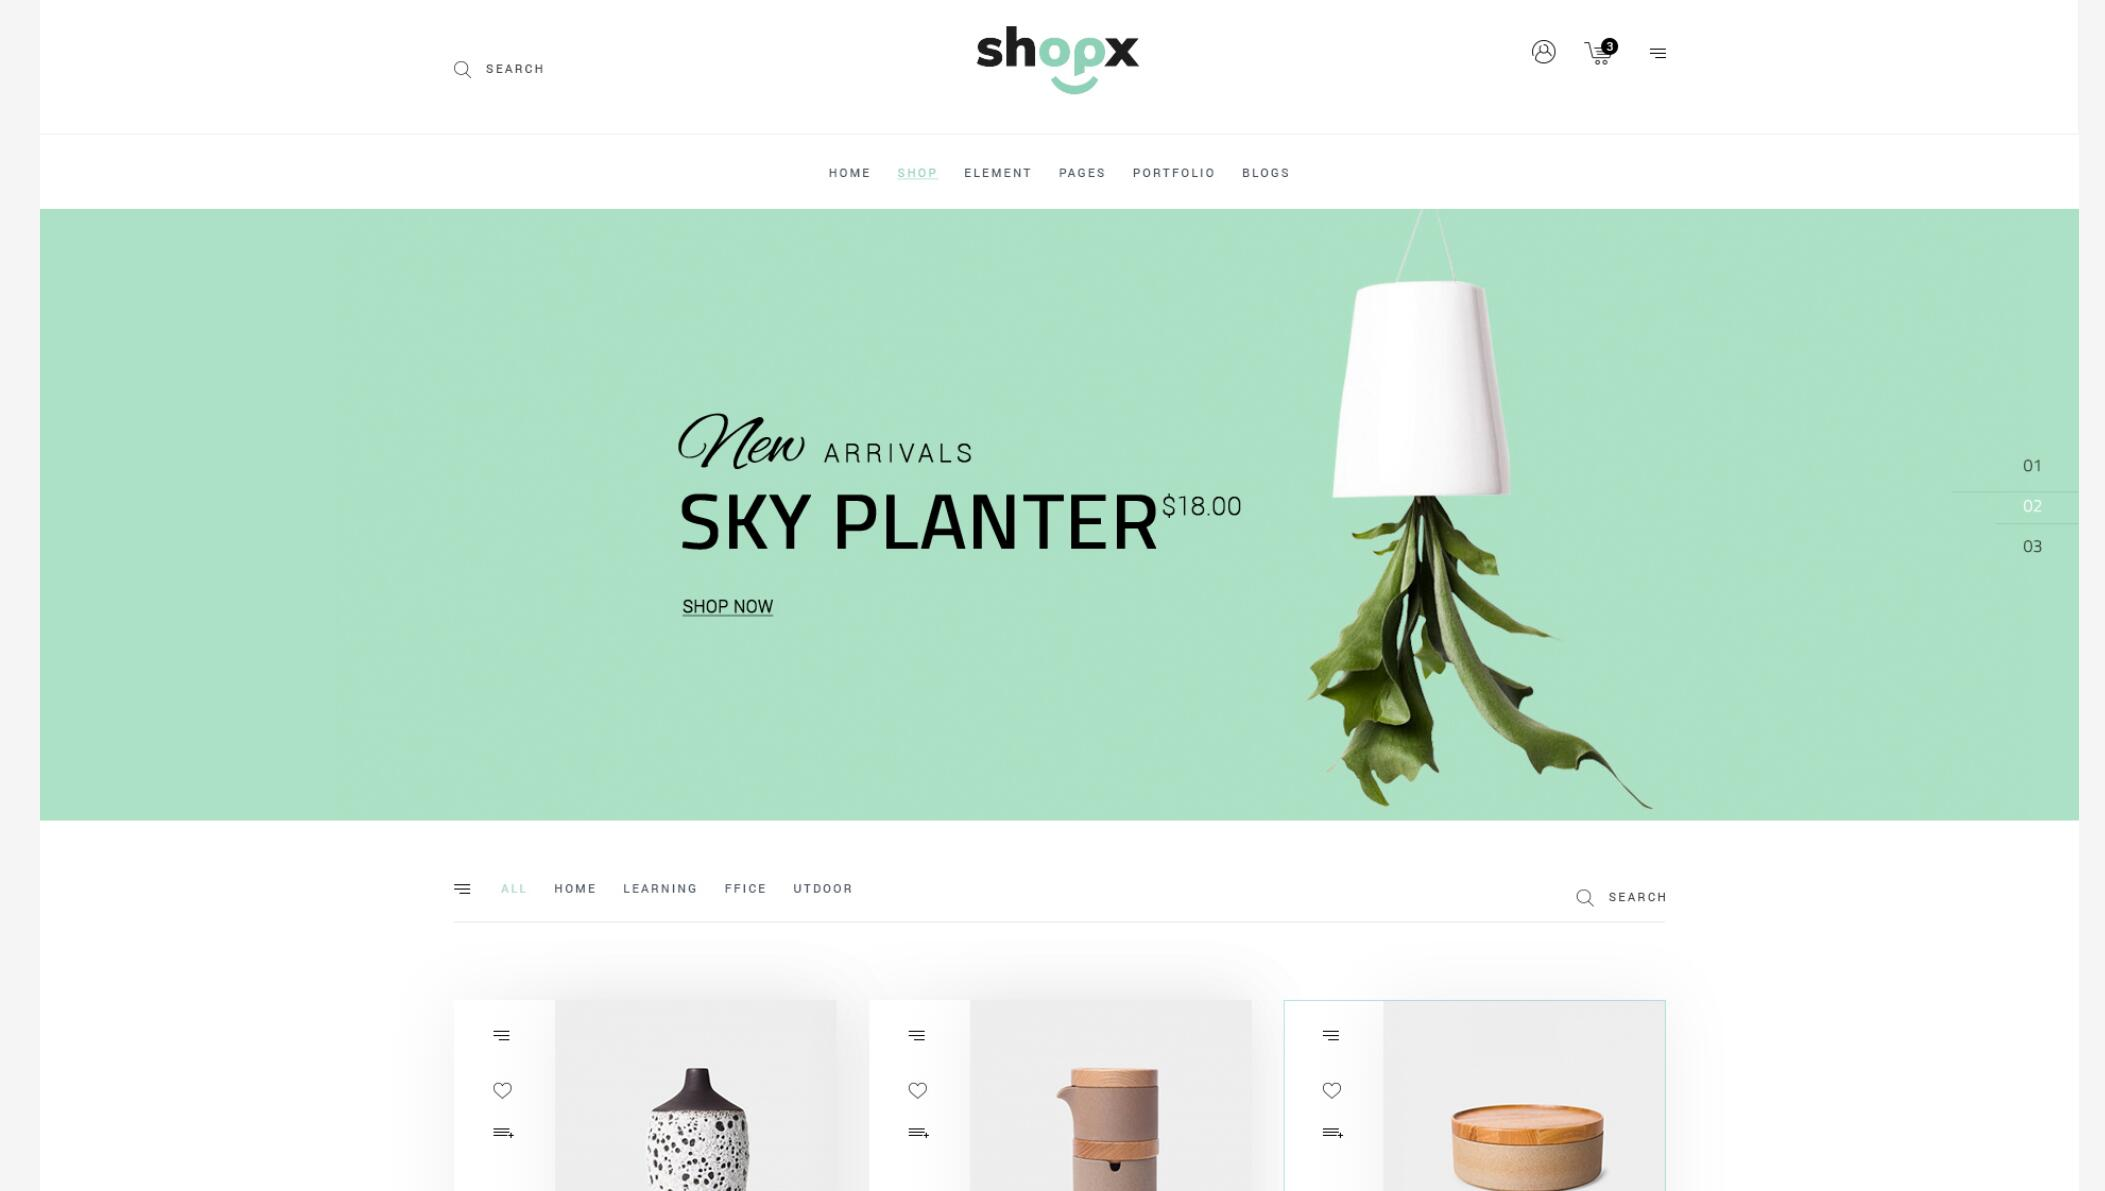 Shopx - Responsive eCommerce Store PSD Template